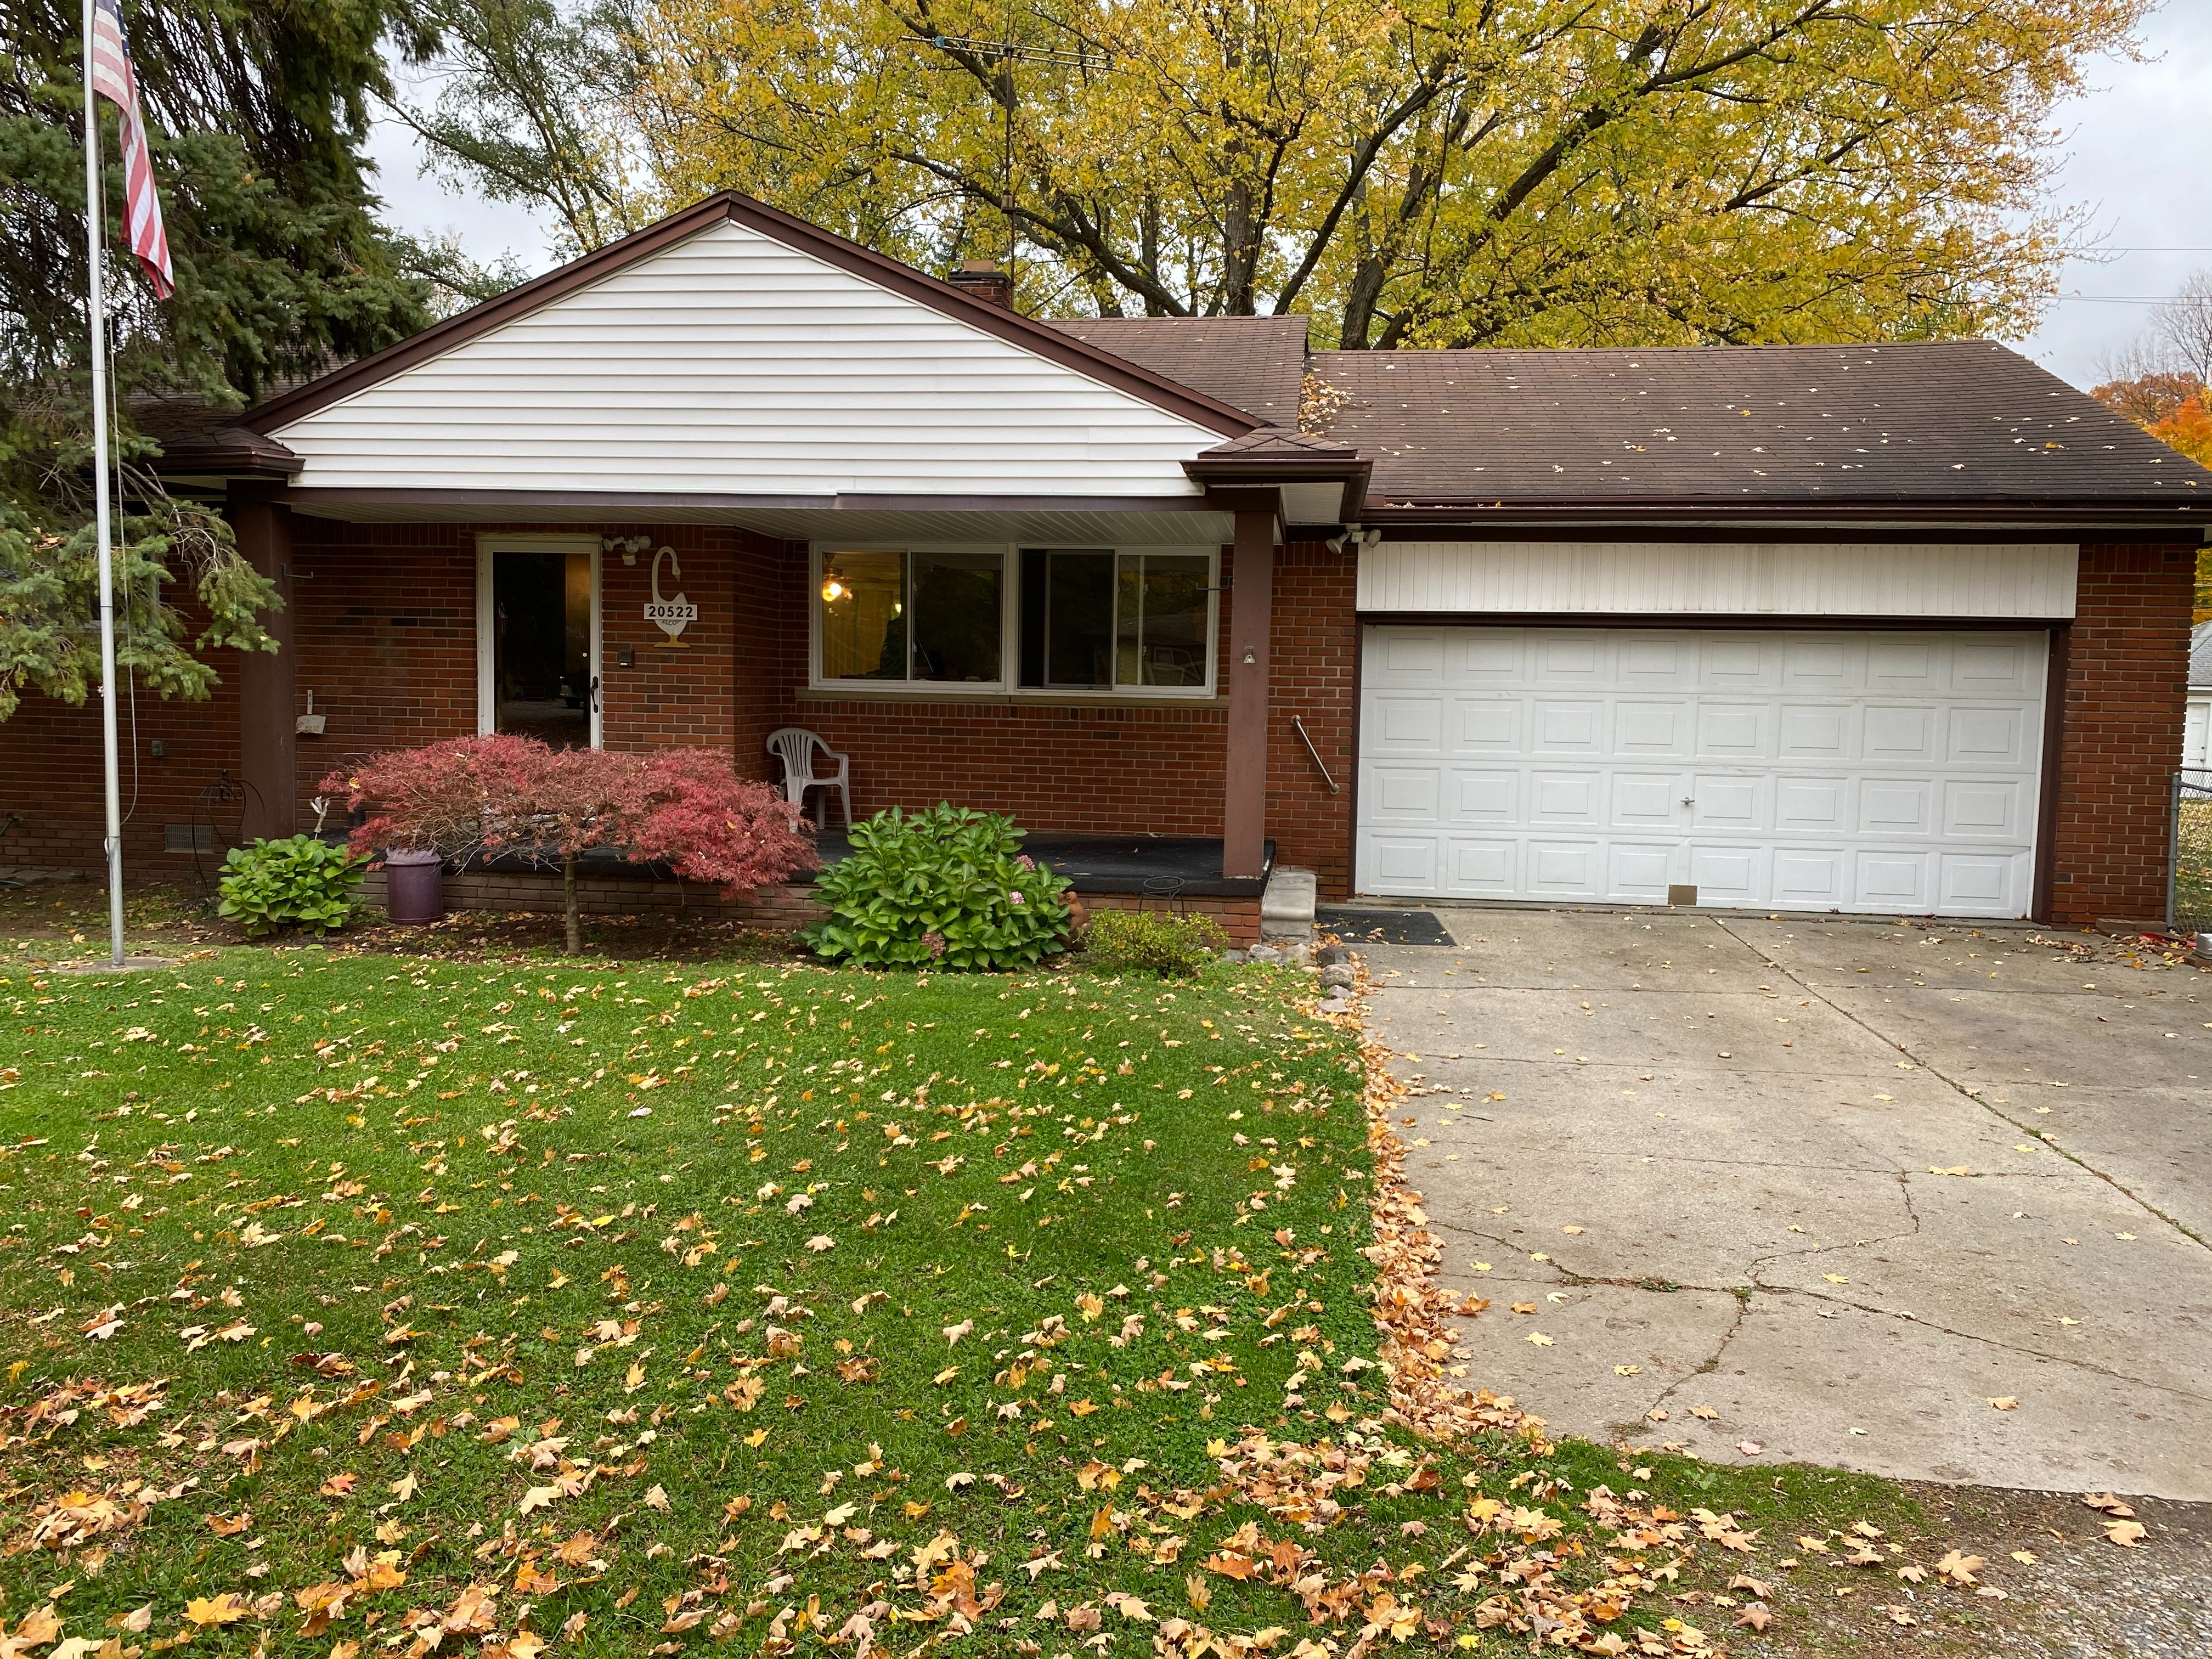 20522 Lexington Redford, MI 48240 (Image - 1)